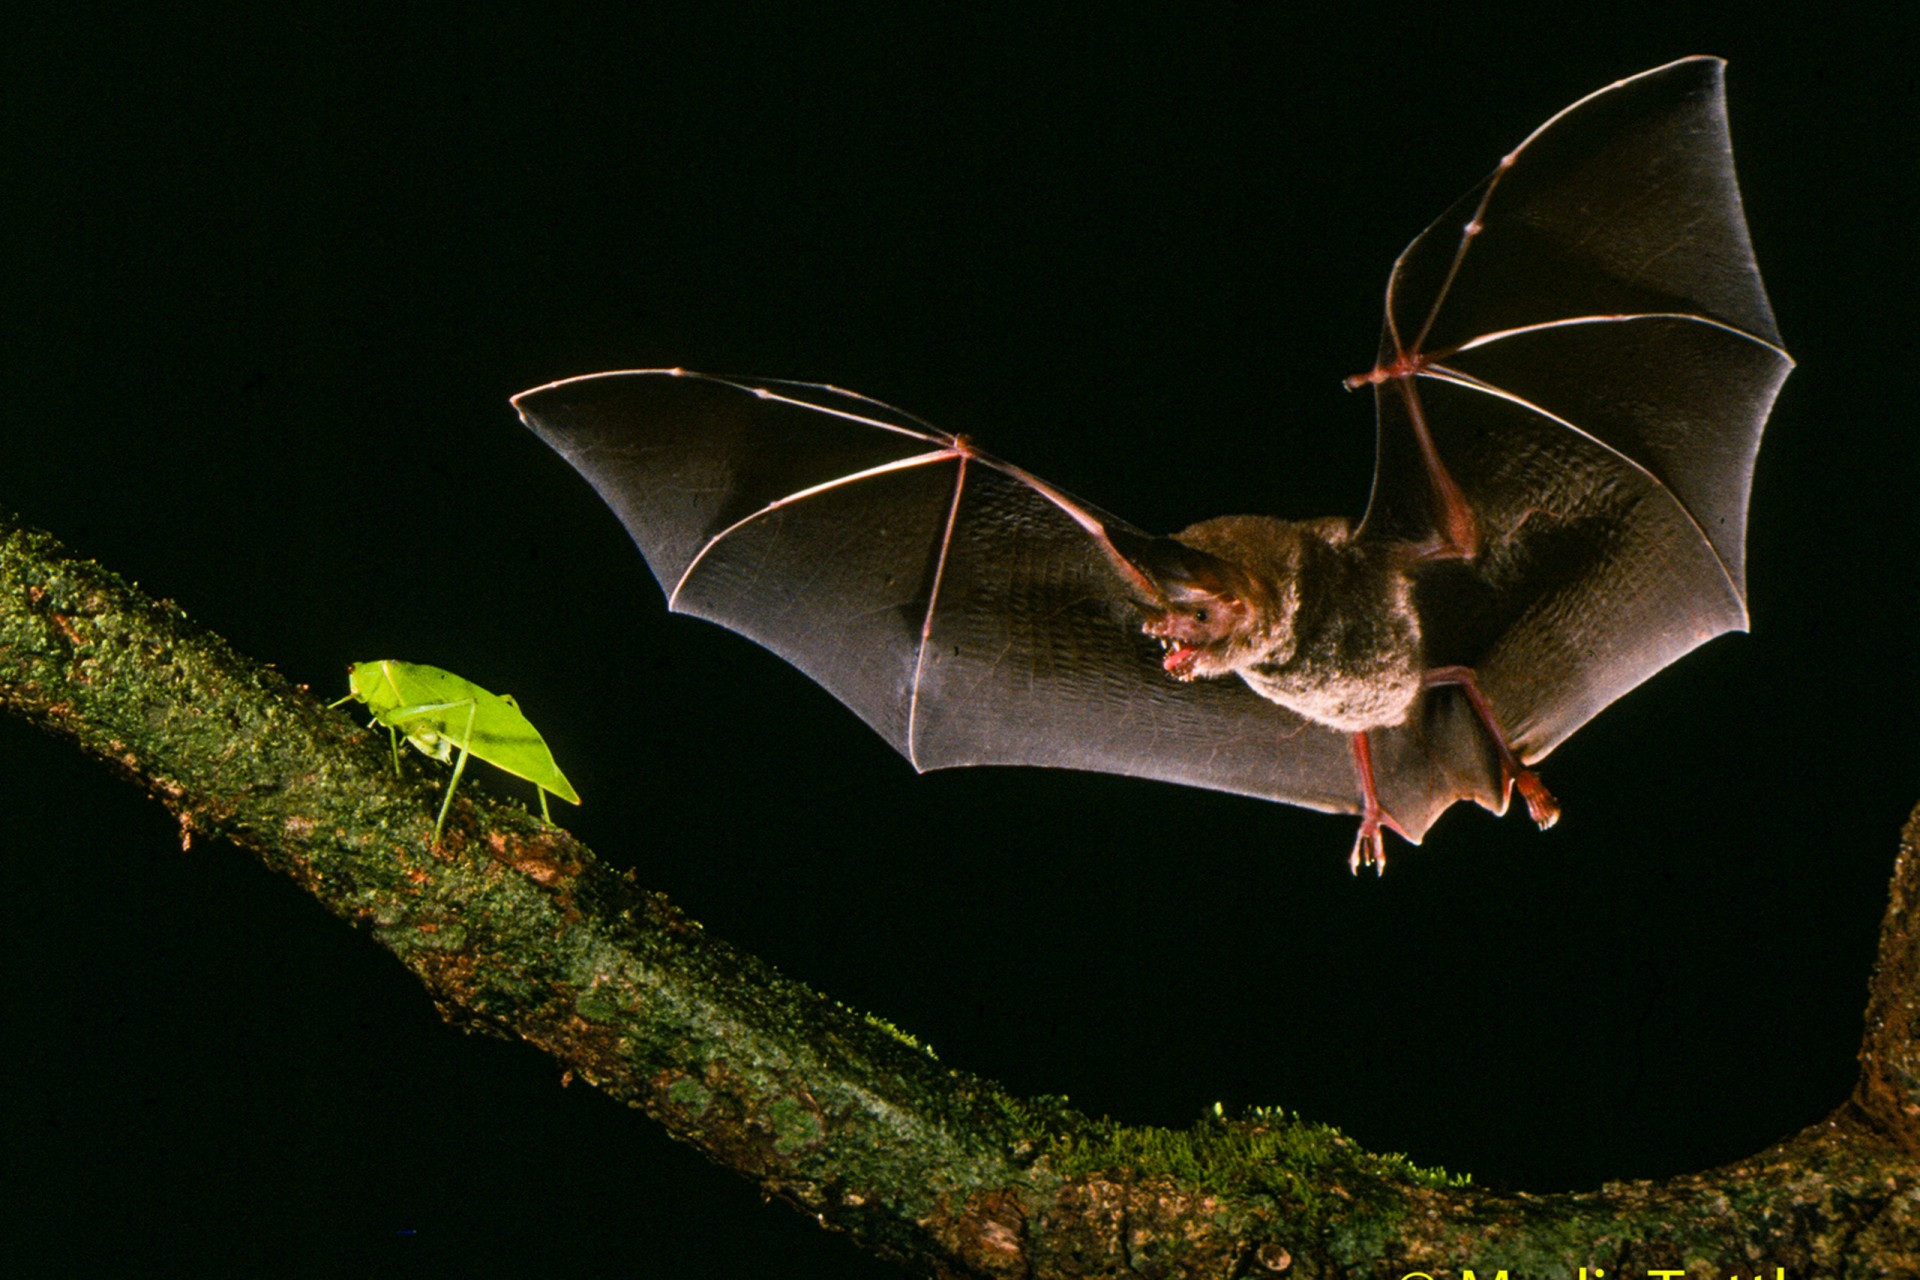 The fringed-lipped bat, Trachops cirrhosus learns the signals that identify good prey species